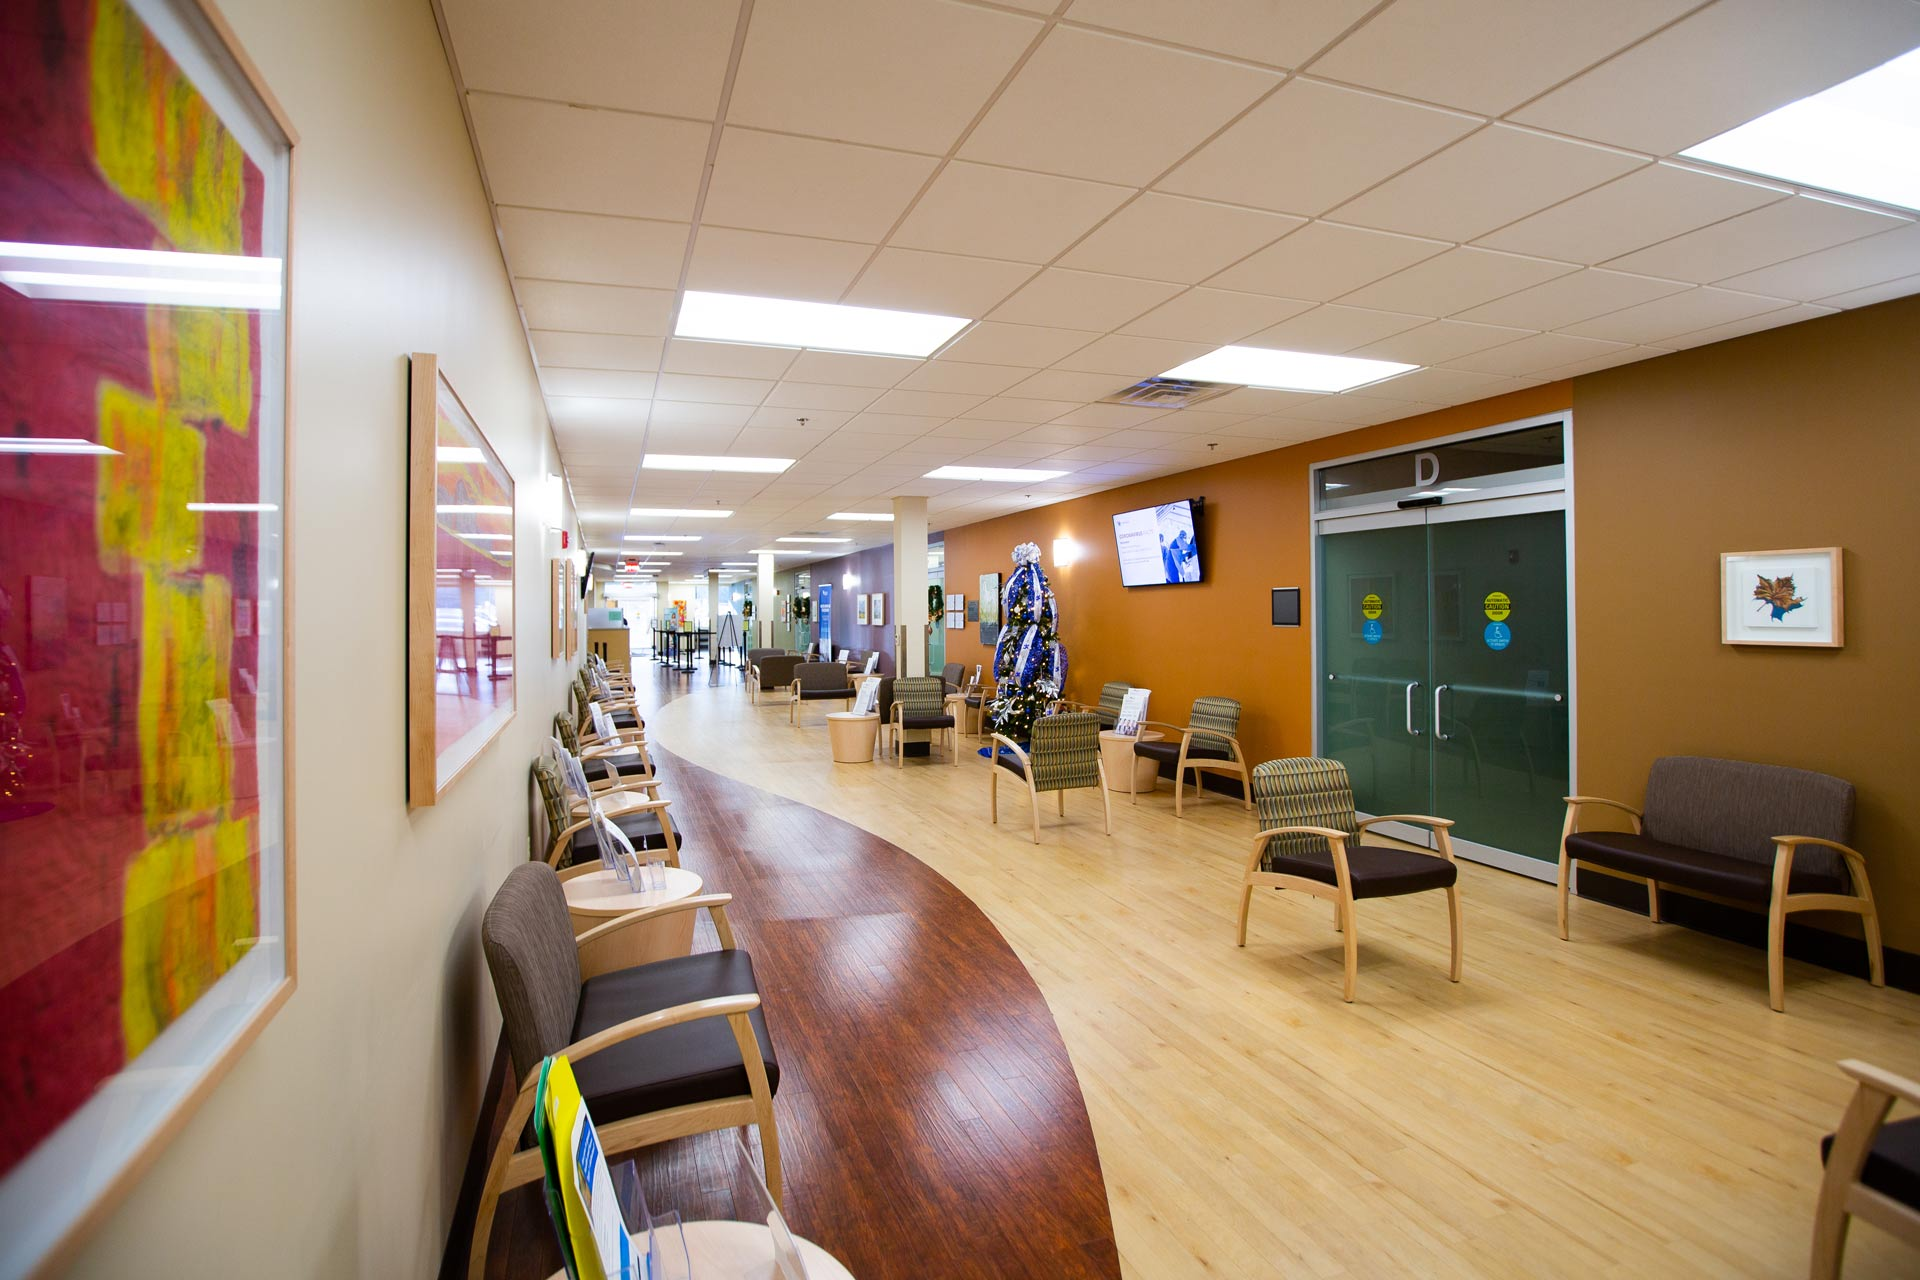 An interior view of the lobby of the UK HealthCare Barnstable Brown Diabetes Center where there is a spread of chairs and tables, paintings on the wall, various signs and informational monitors.